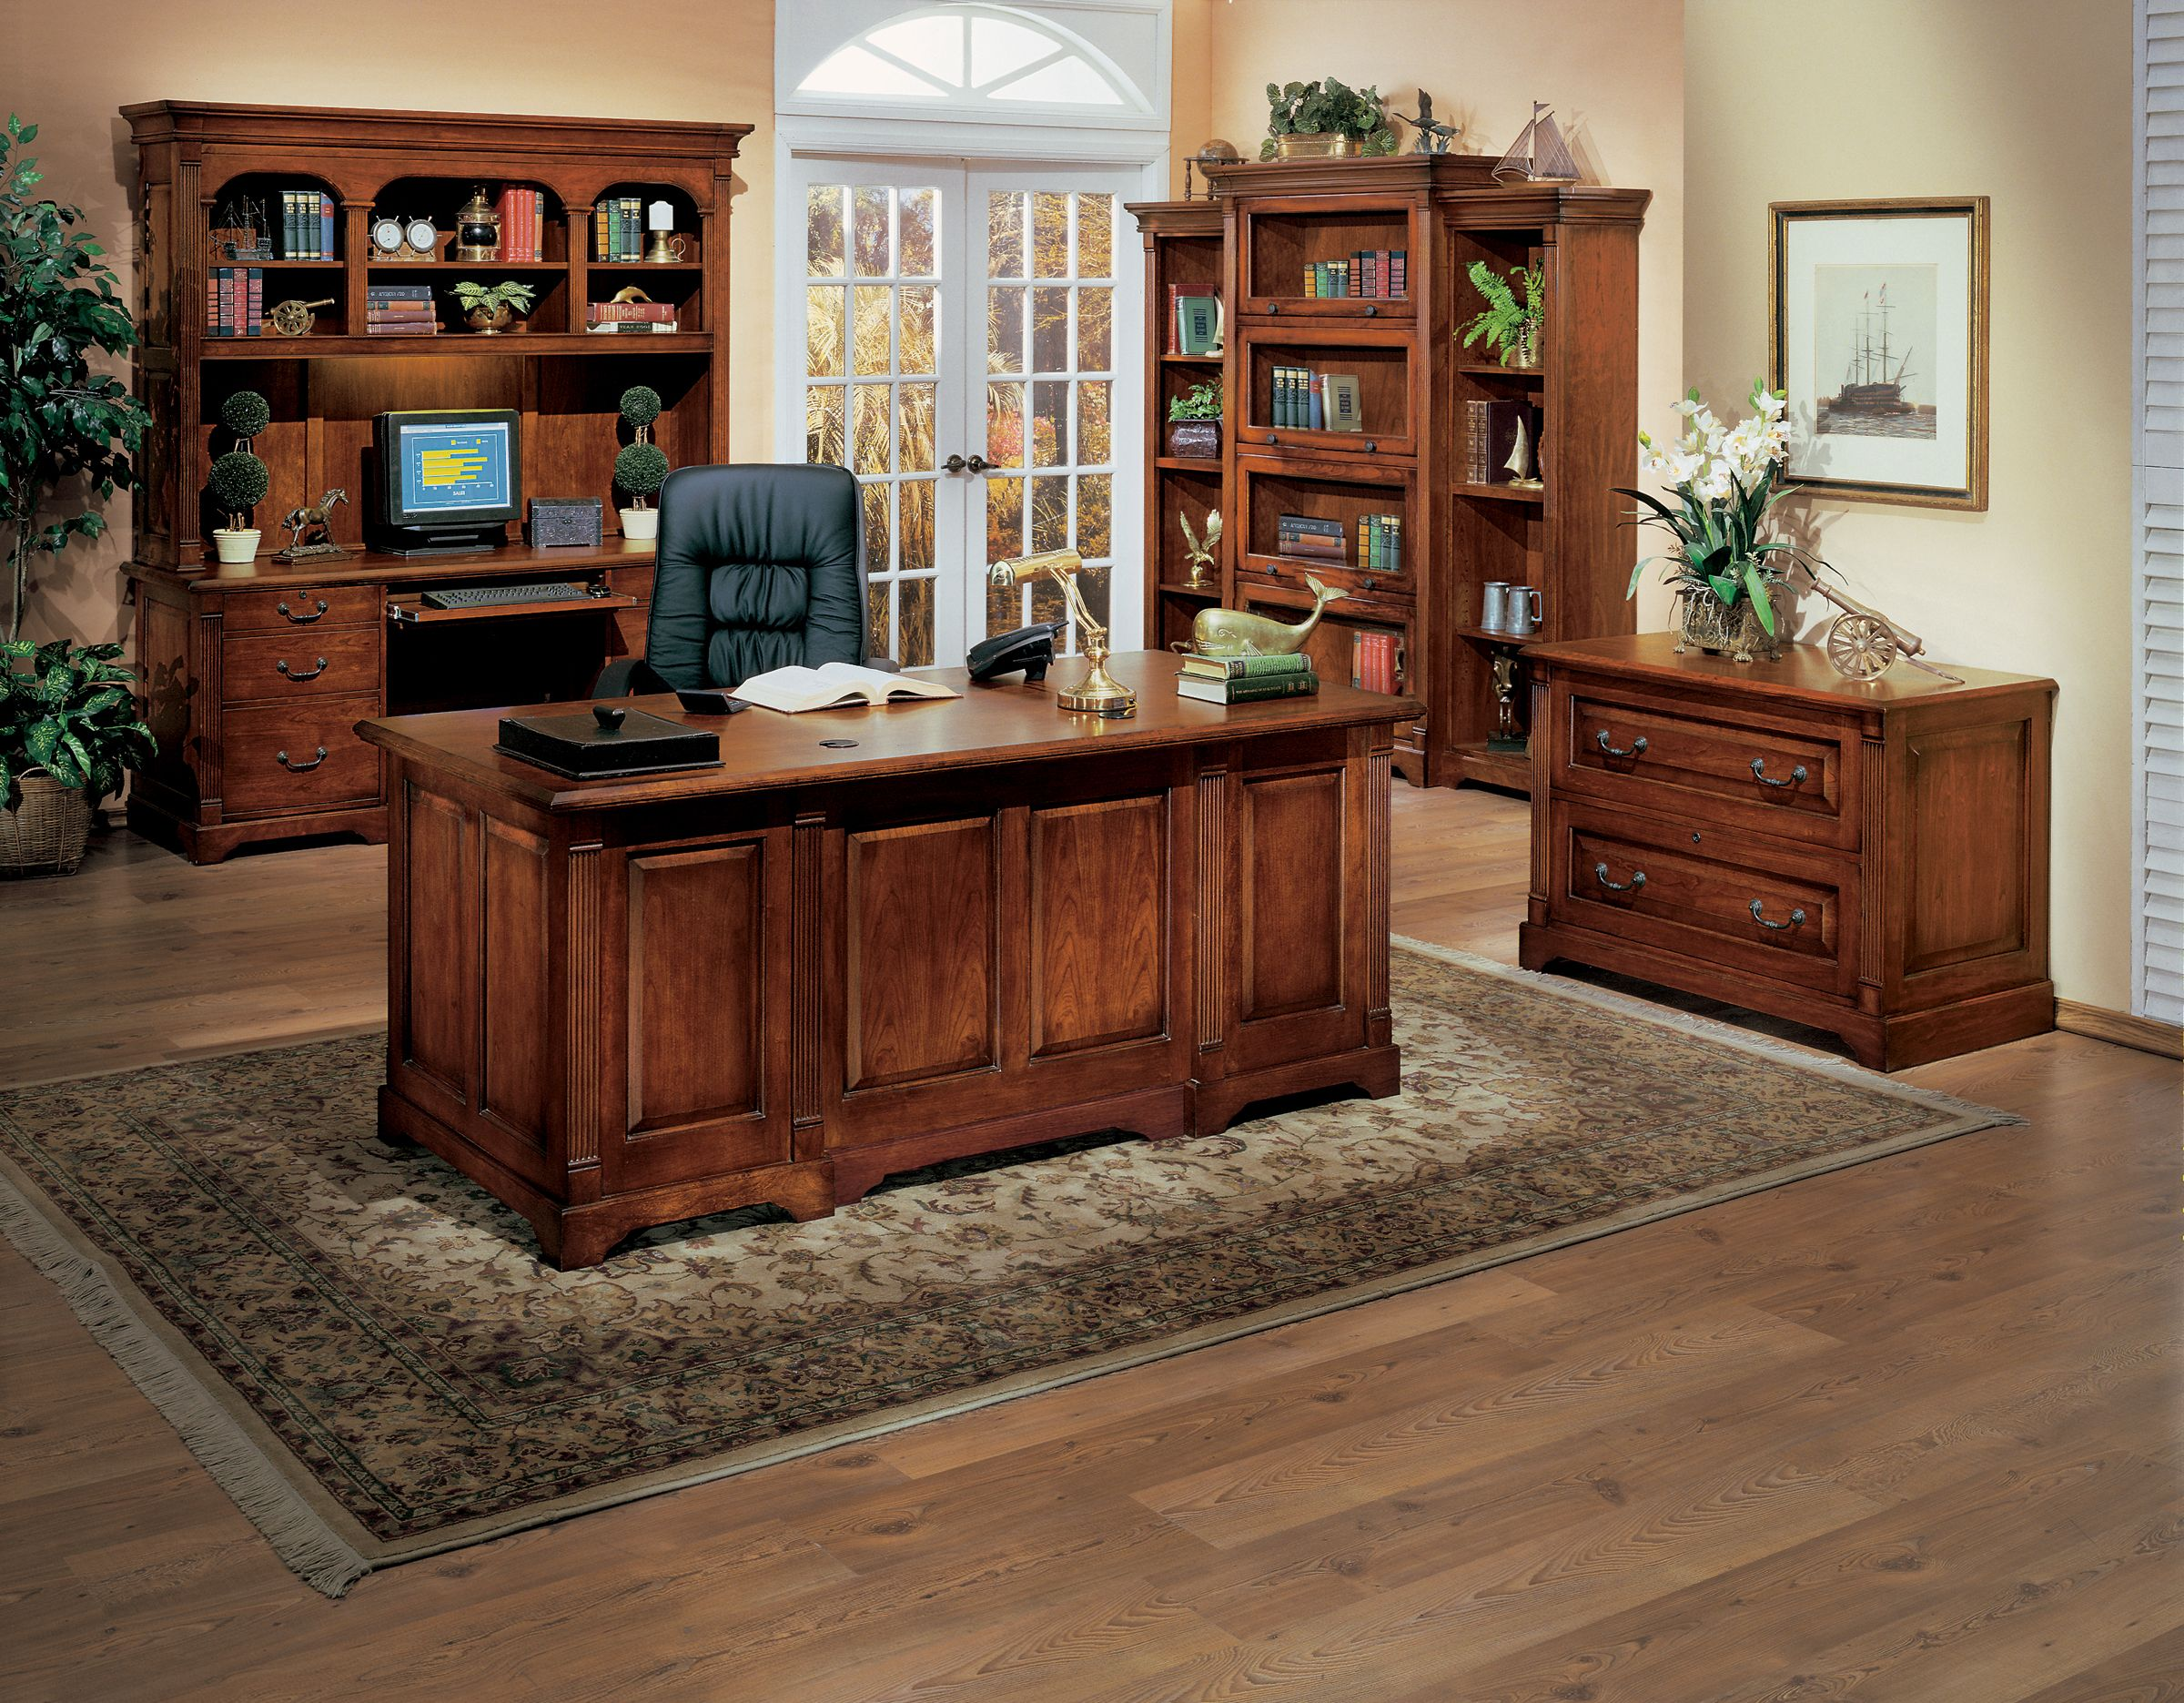 Office Layout Transitions Going From Traditional To Modern Office Home Office Furniture Sets Modular Home Office Furniture Traditional Home Office Furniture